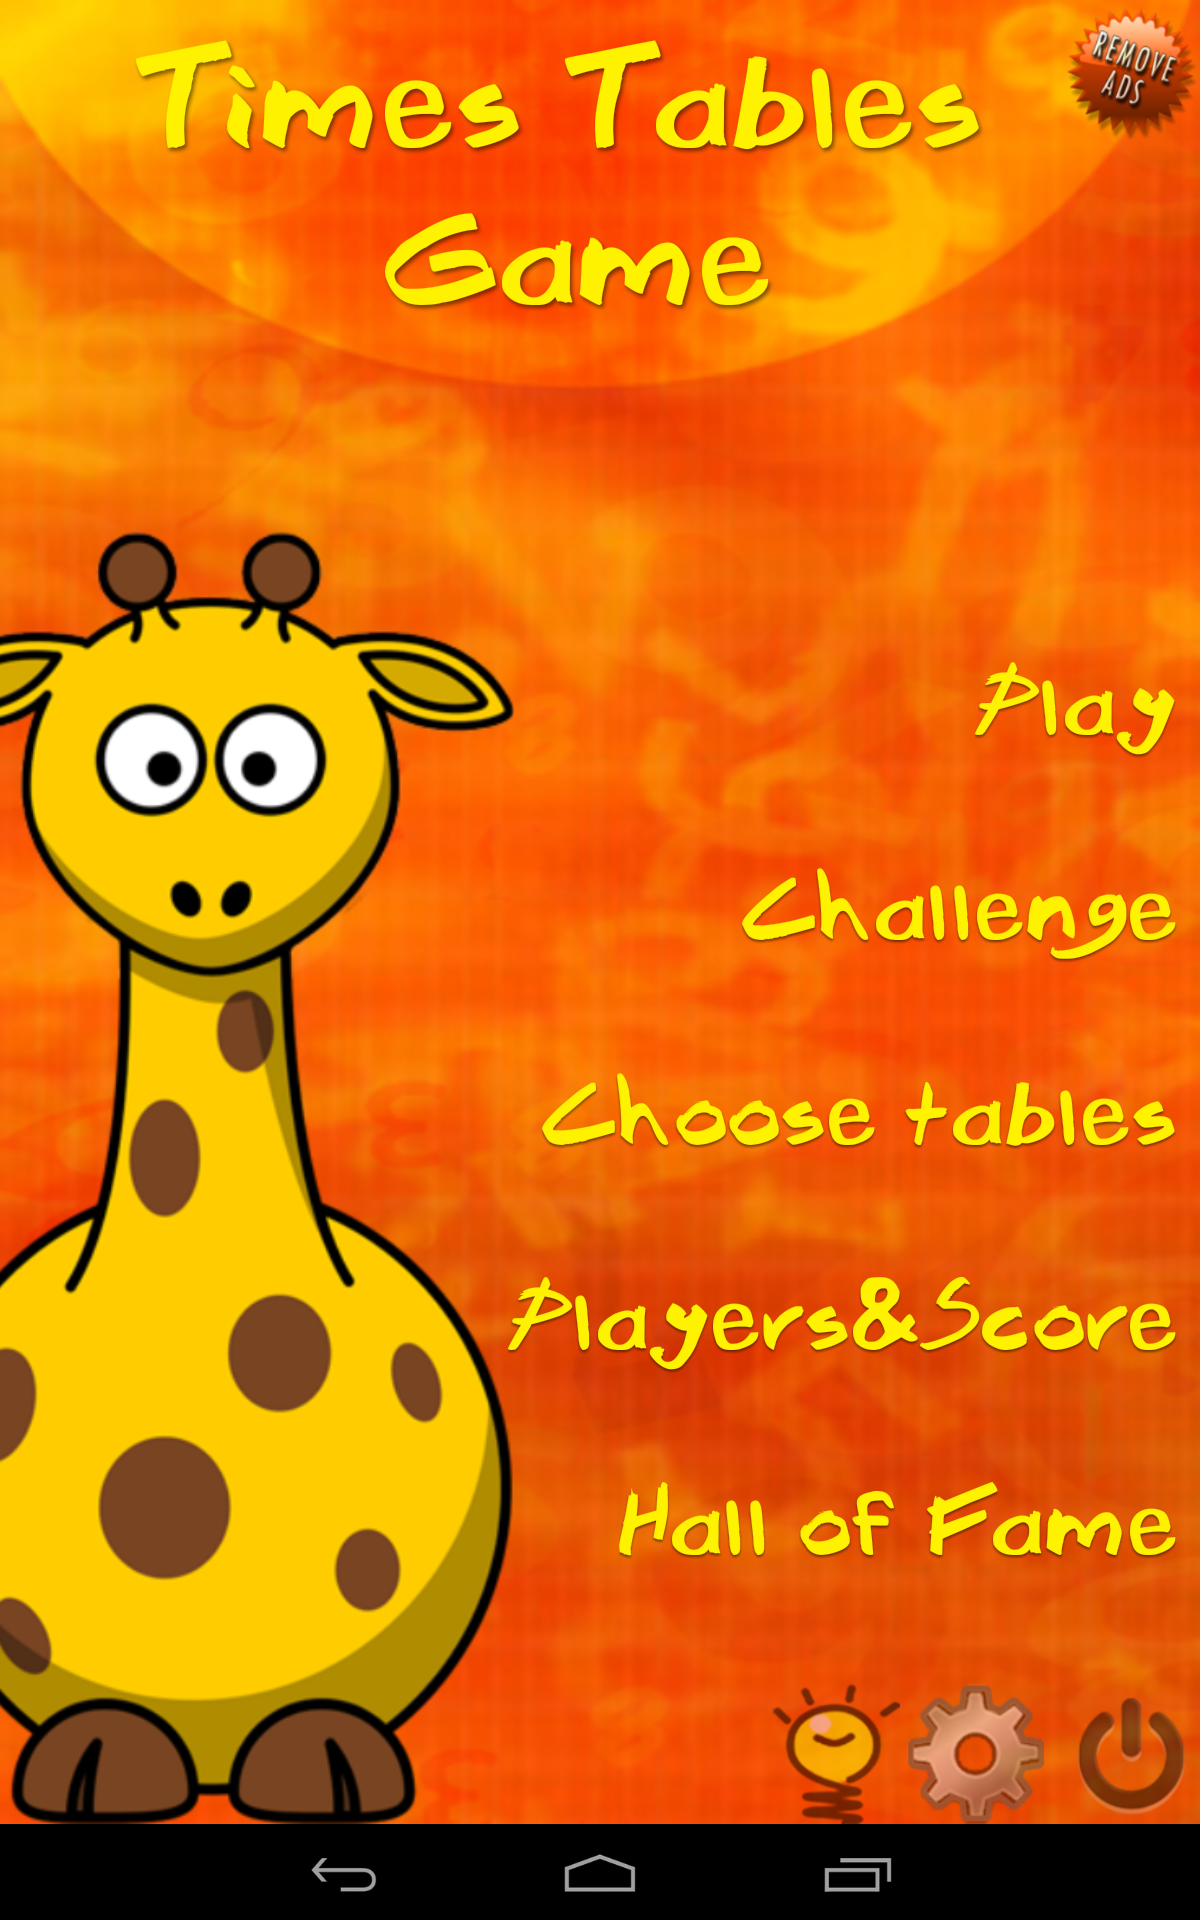 Times Tables Game (free) screenshot #7